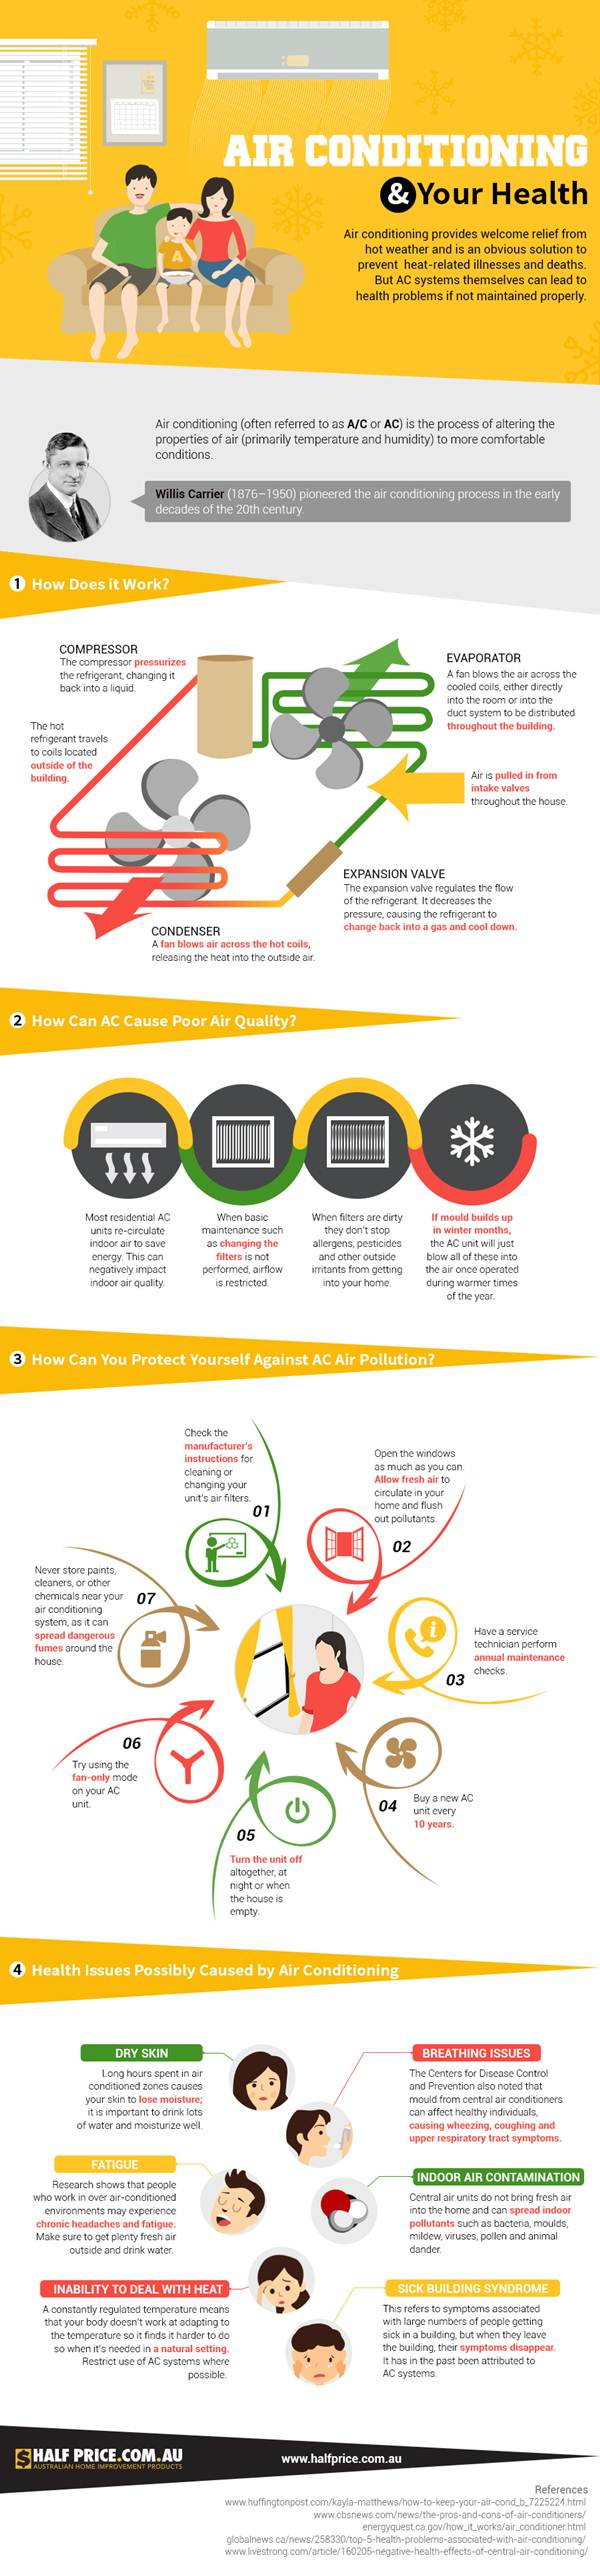 Air Conditioning and Health Infographic